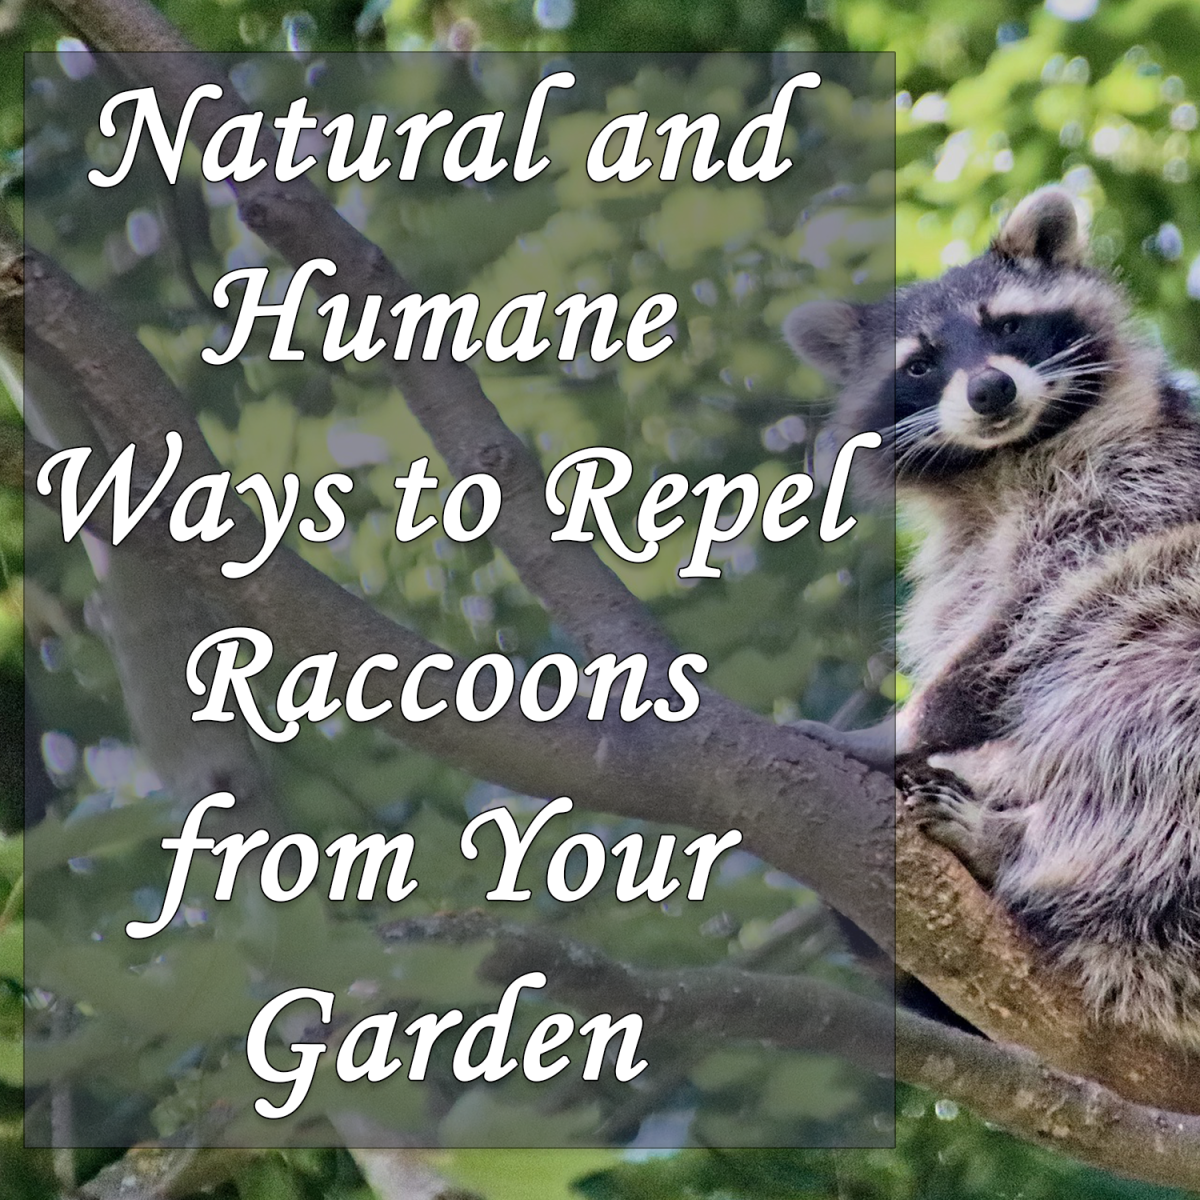 Natural and Humane Ways to Repel Raccoons From Your Garden